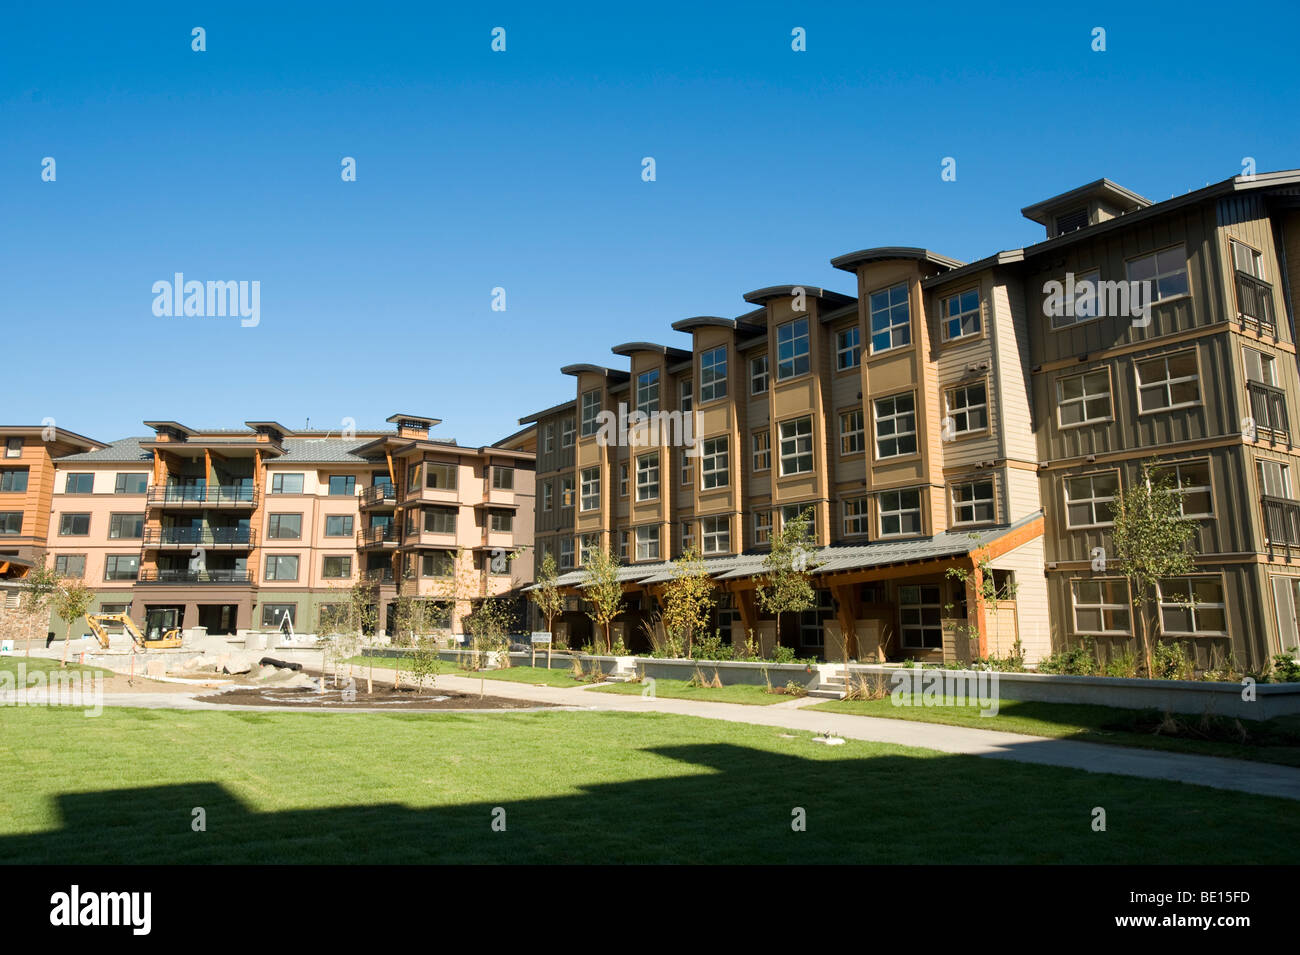 The Whistler 2010 Olympics Athlete's Village open house. - Stock Image